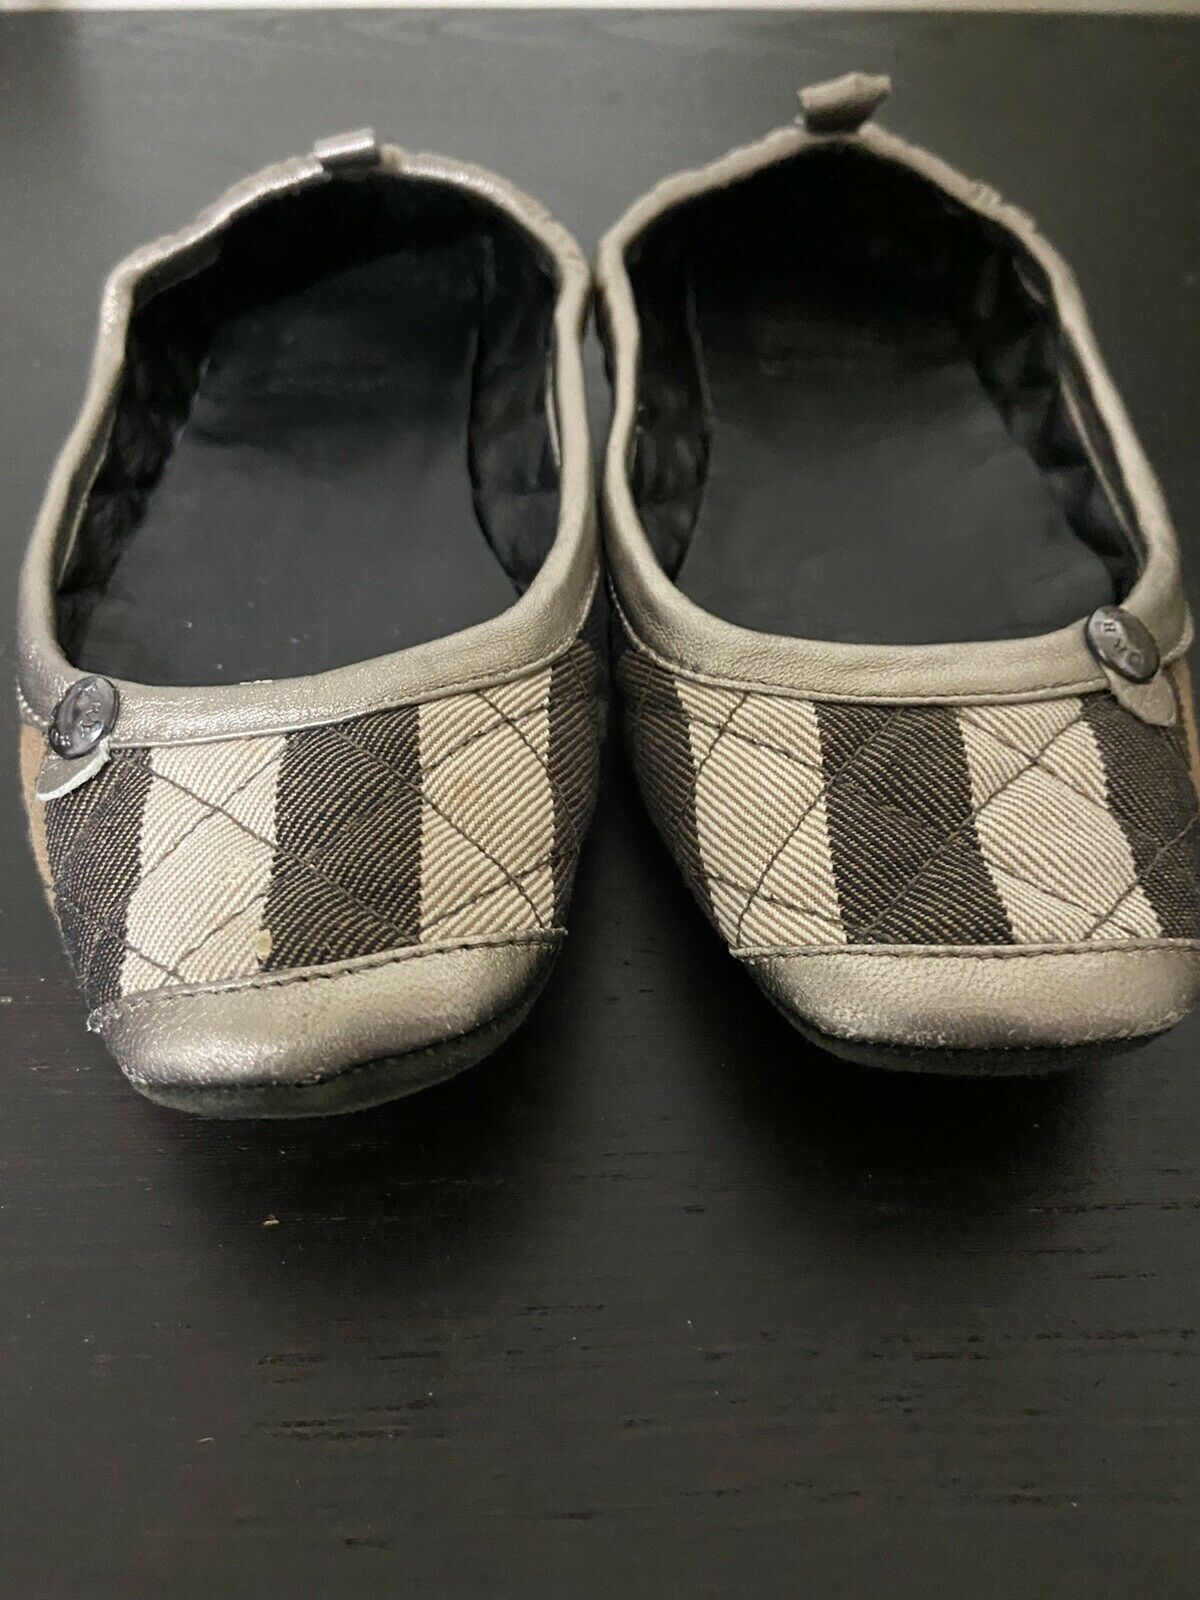 Burberry Women's Slippers SIZE 5 - image 4